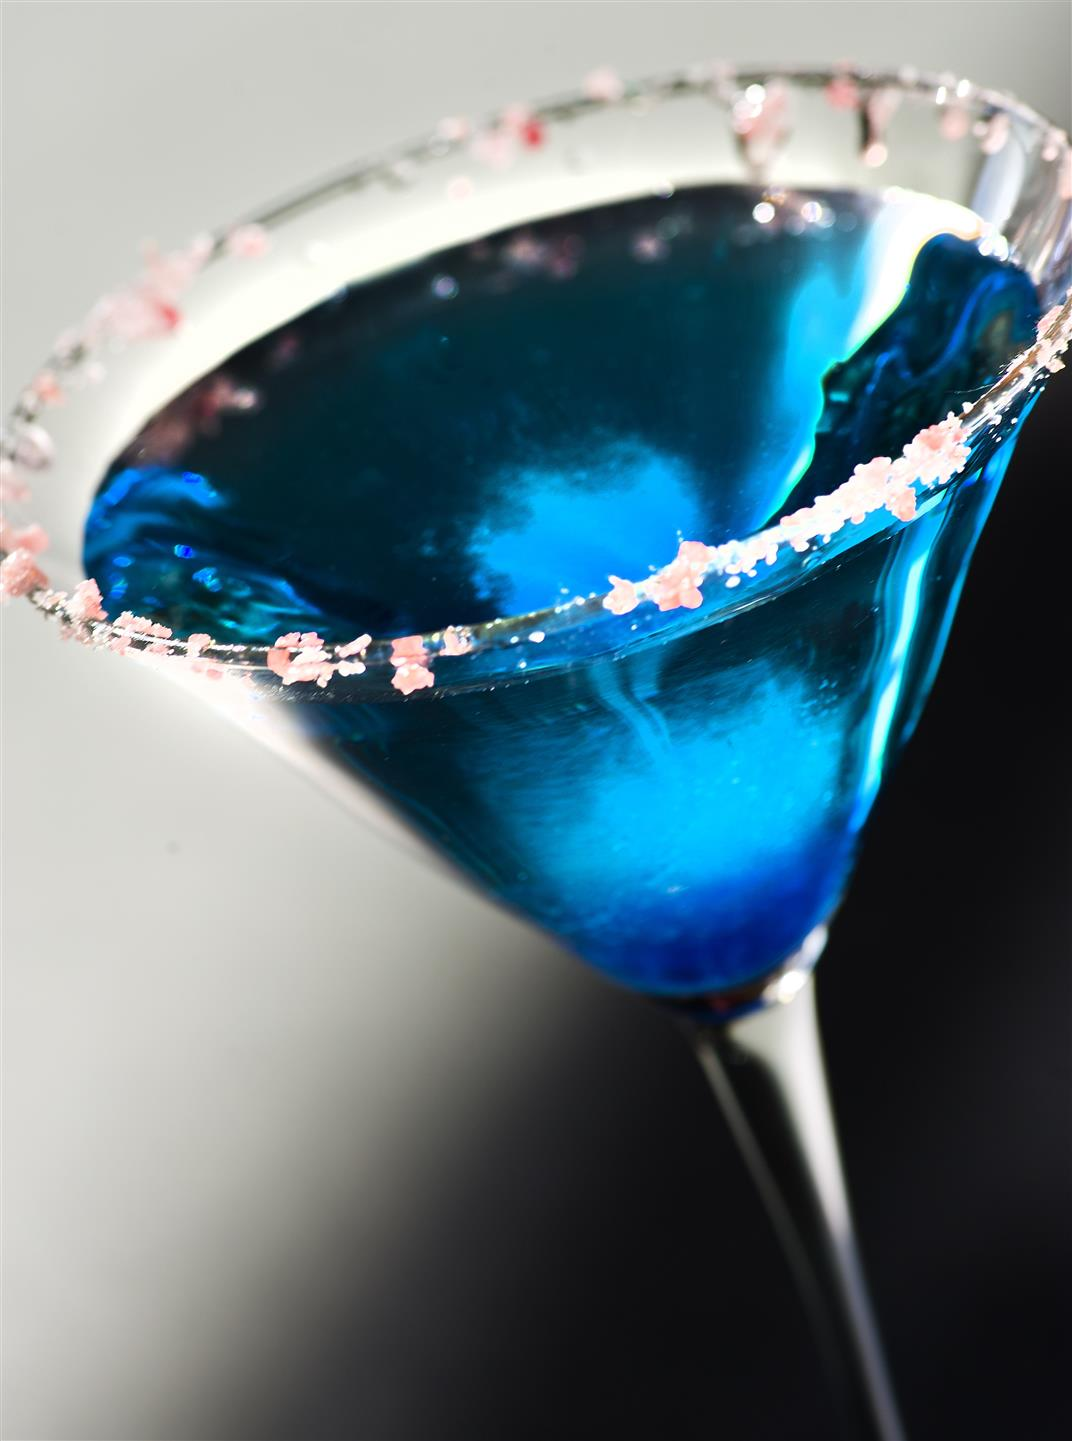 blue cocktail being poured into a glass with candy on the rim